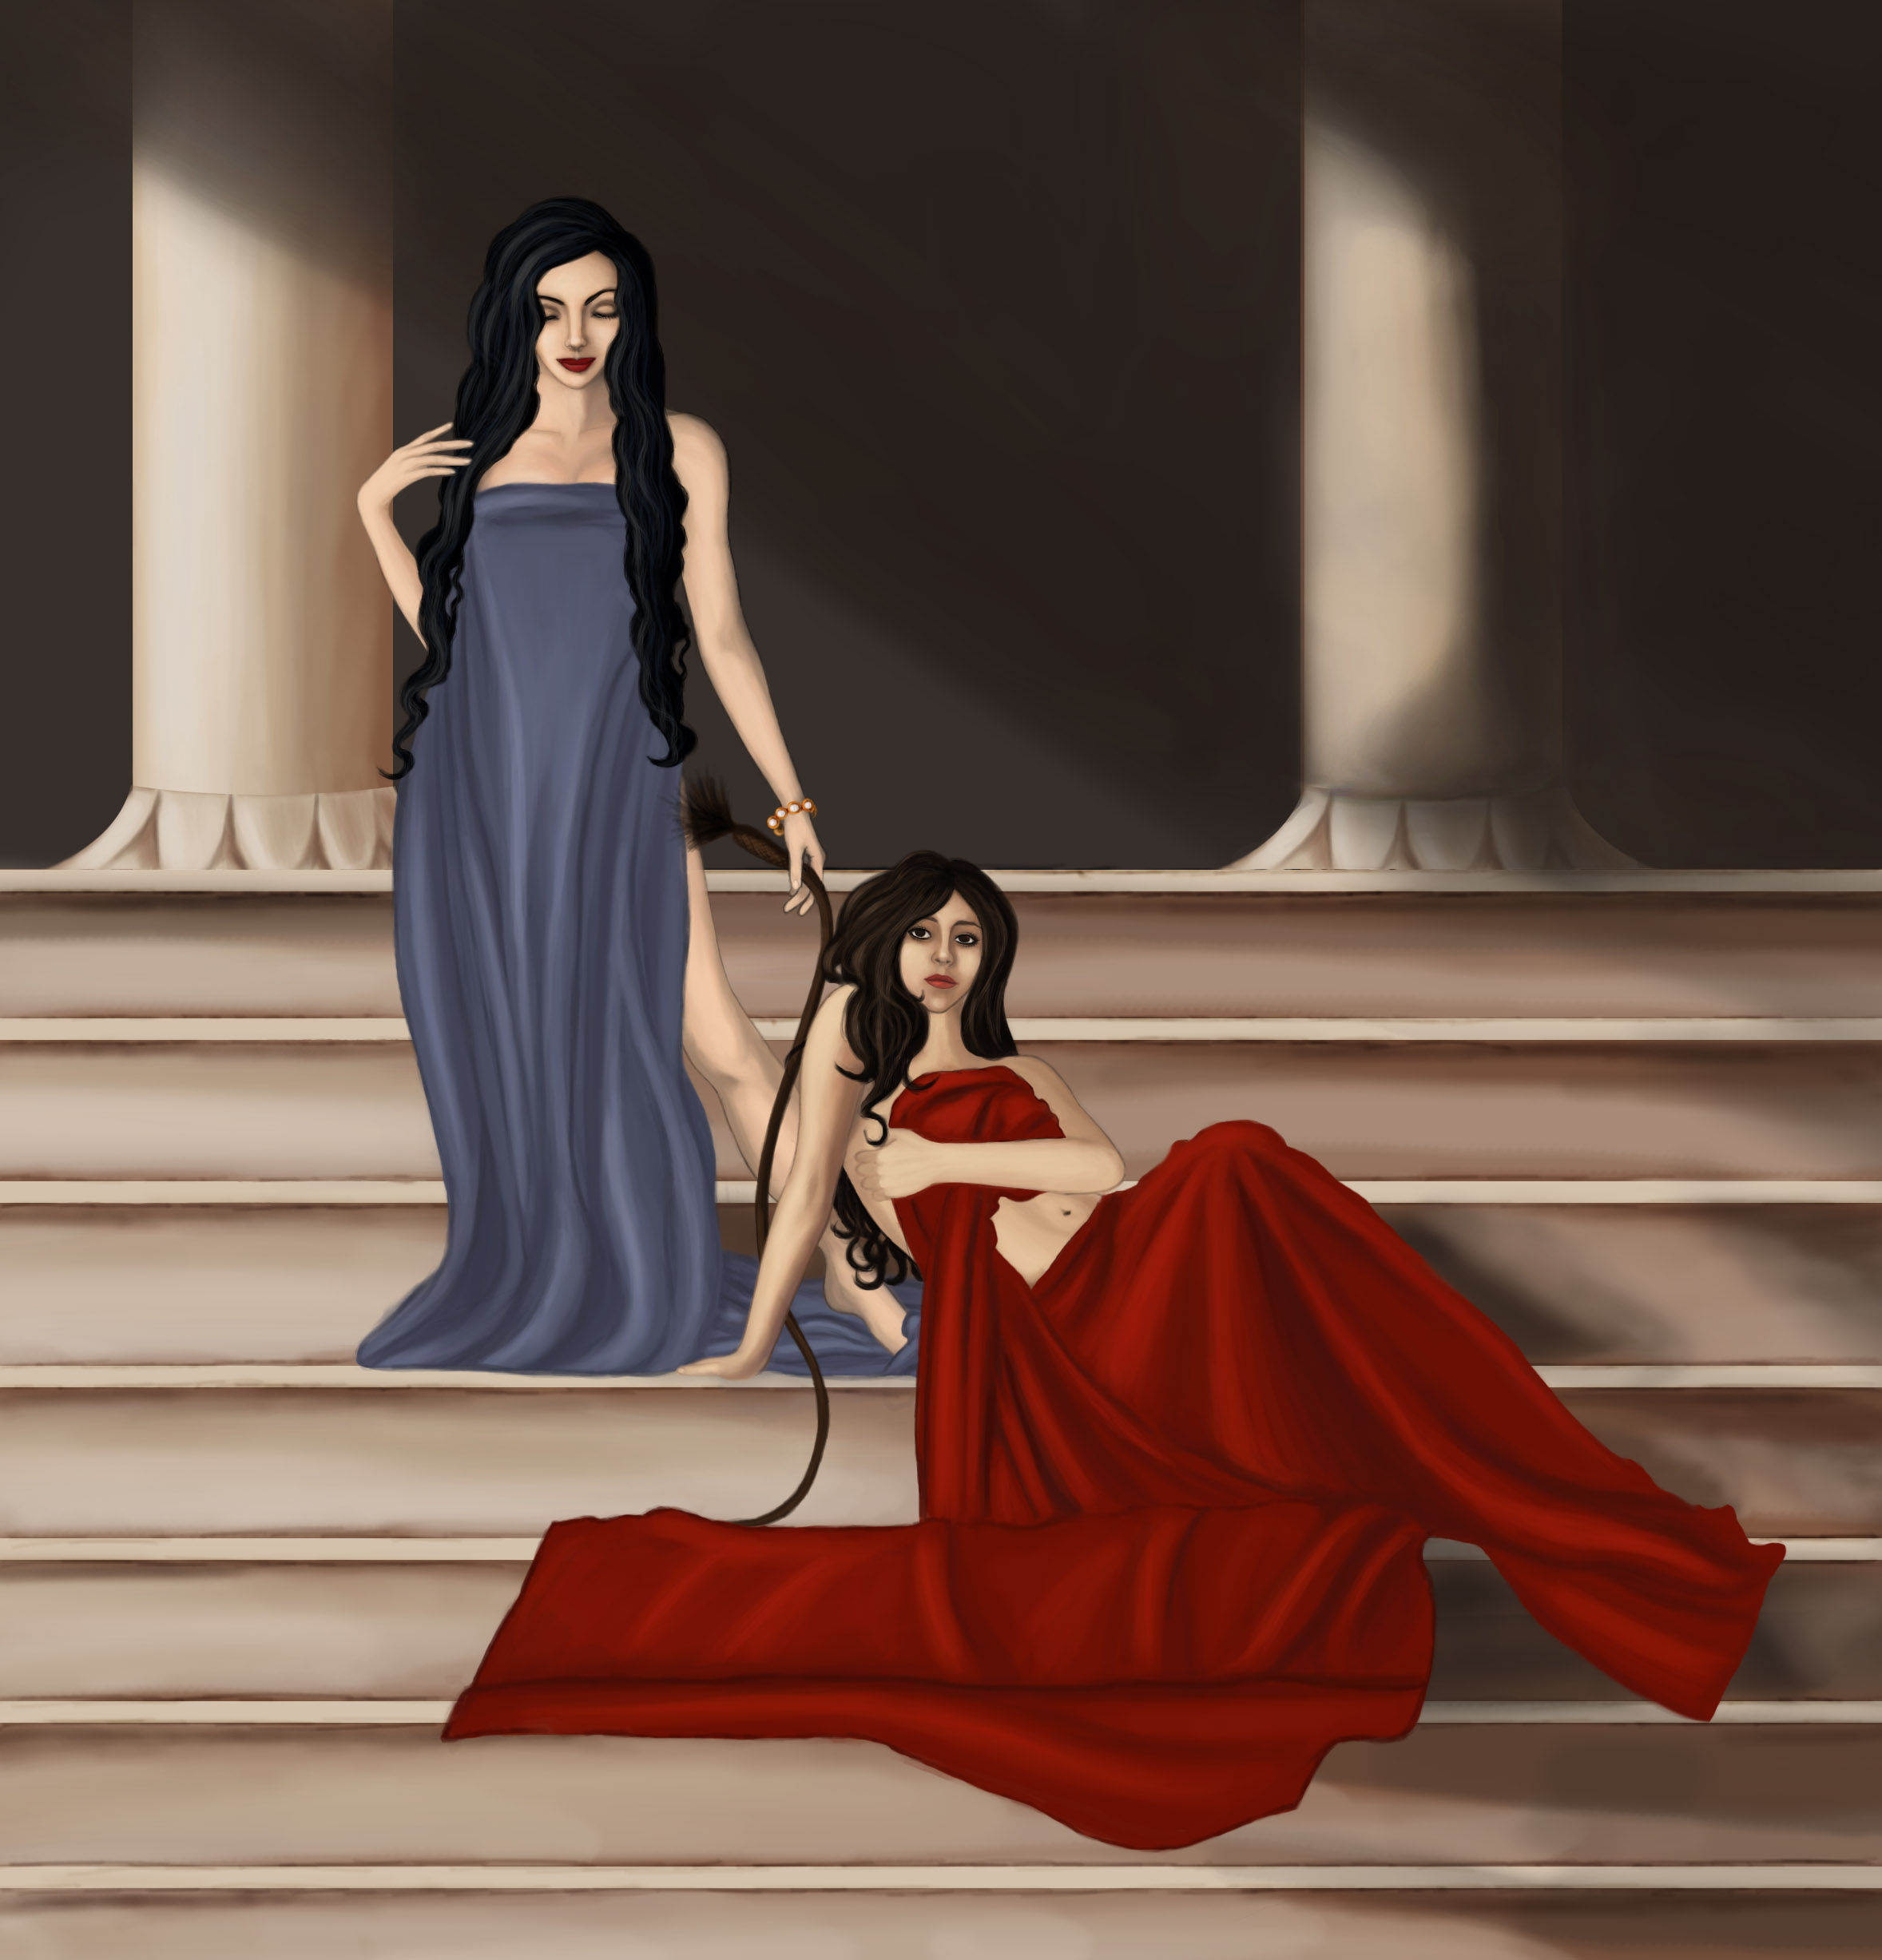 Melisande and Phedre